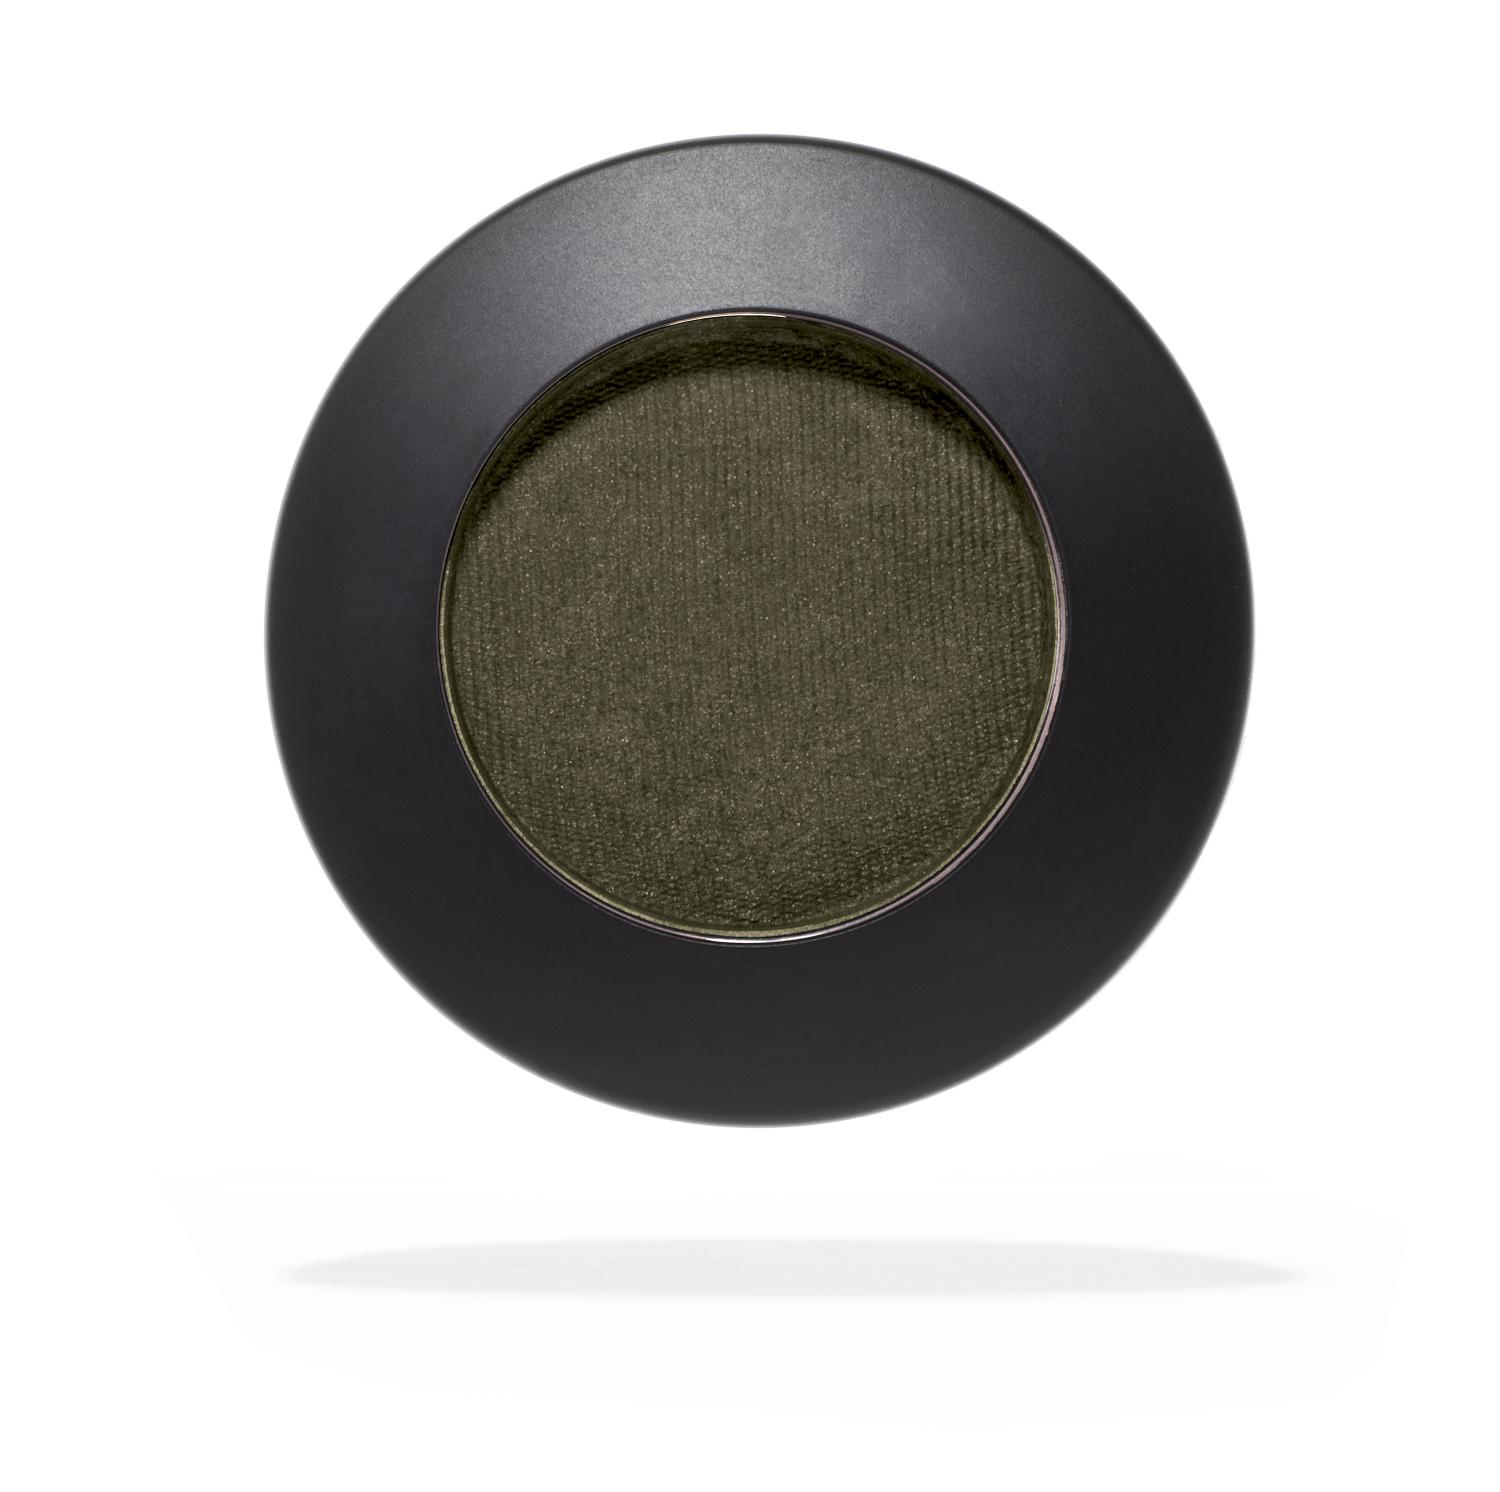 COTT - MICRONIZED EYE SHADOW